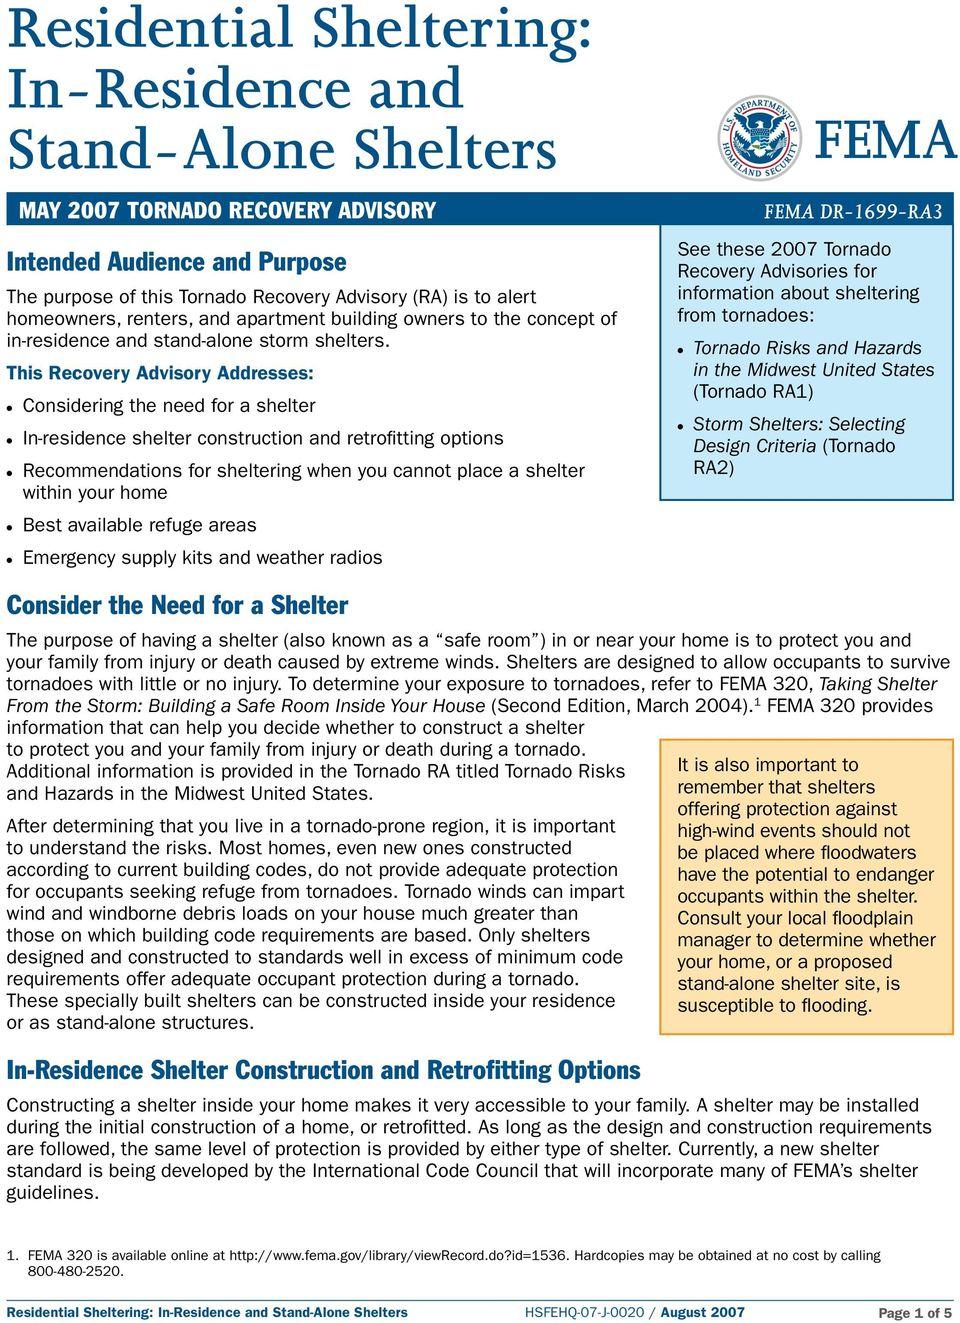 This Recovery Advisory Addresses: MAY 2007 TORNADO RECOVERY ADVISORY Considering the need for a shelter In-residence shelter construction and retrofitting options Recommendations for sheltering when